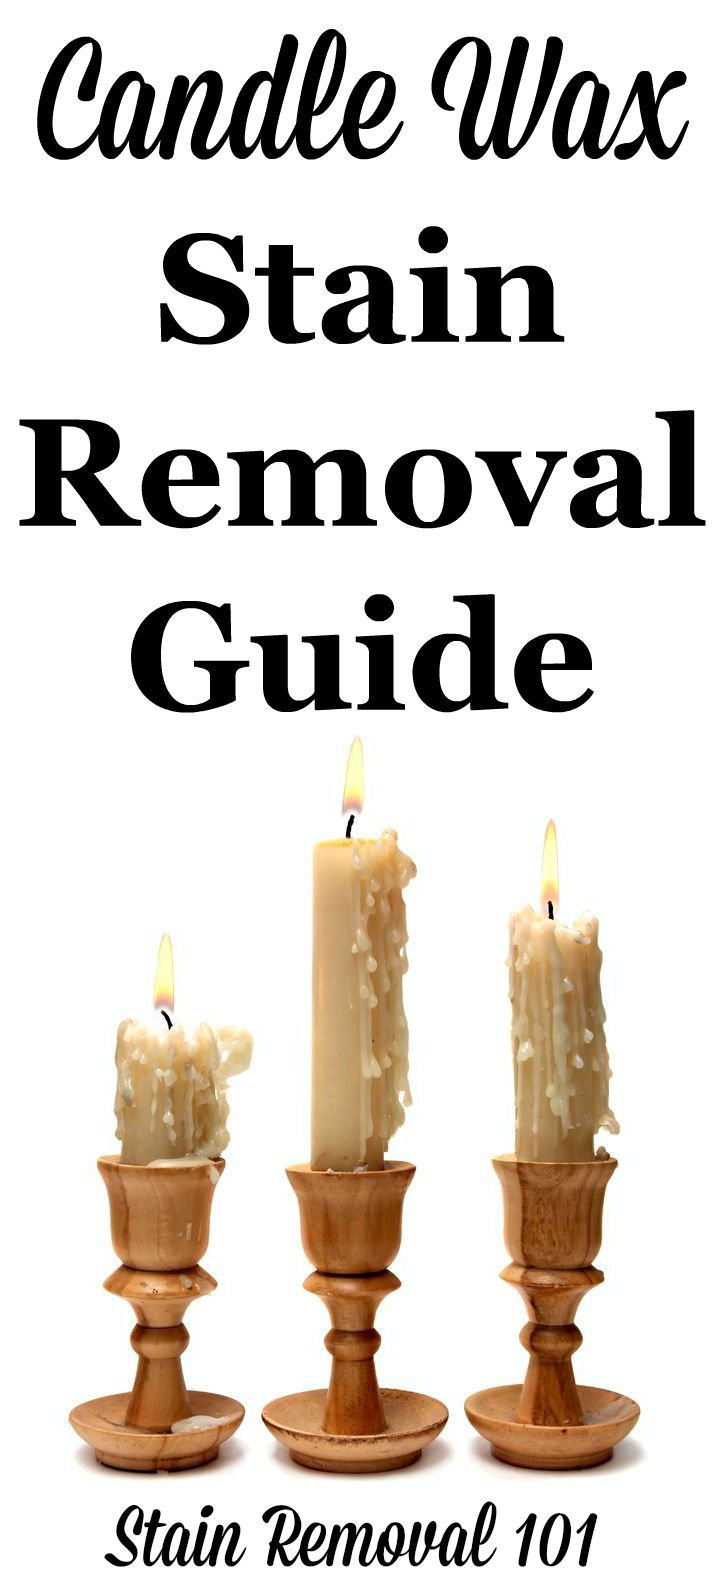 Candle Wax Stain Removal Guide Stain Remover Carpet Candle Wax Removal Candle Wax